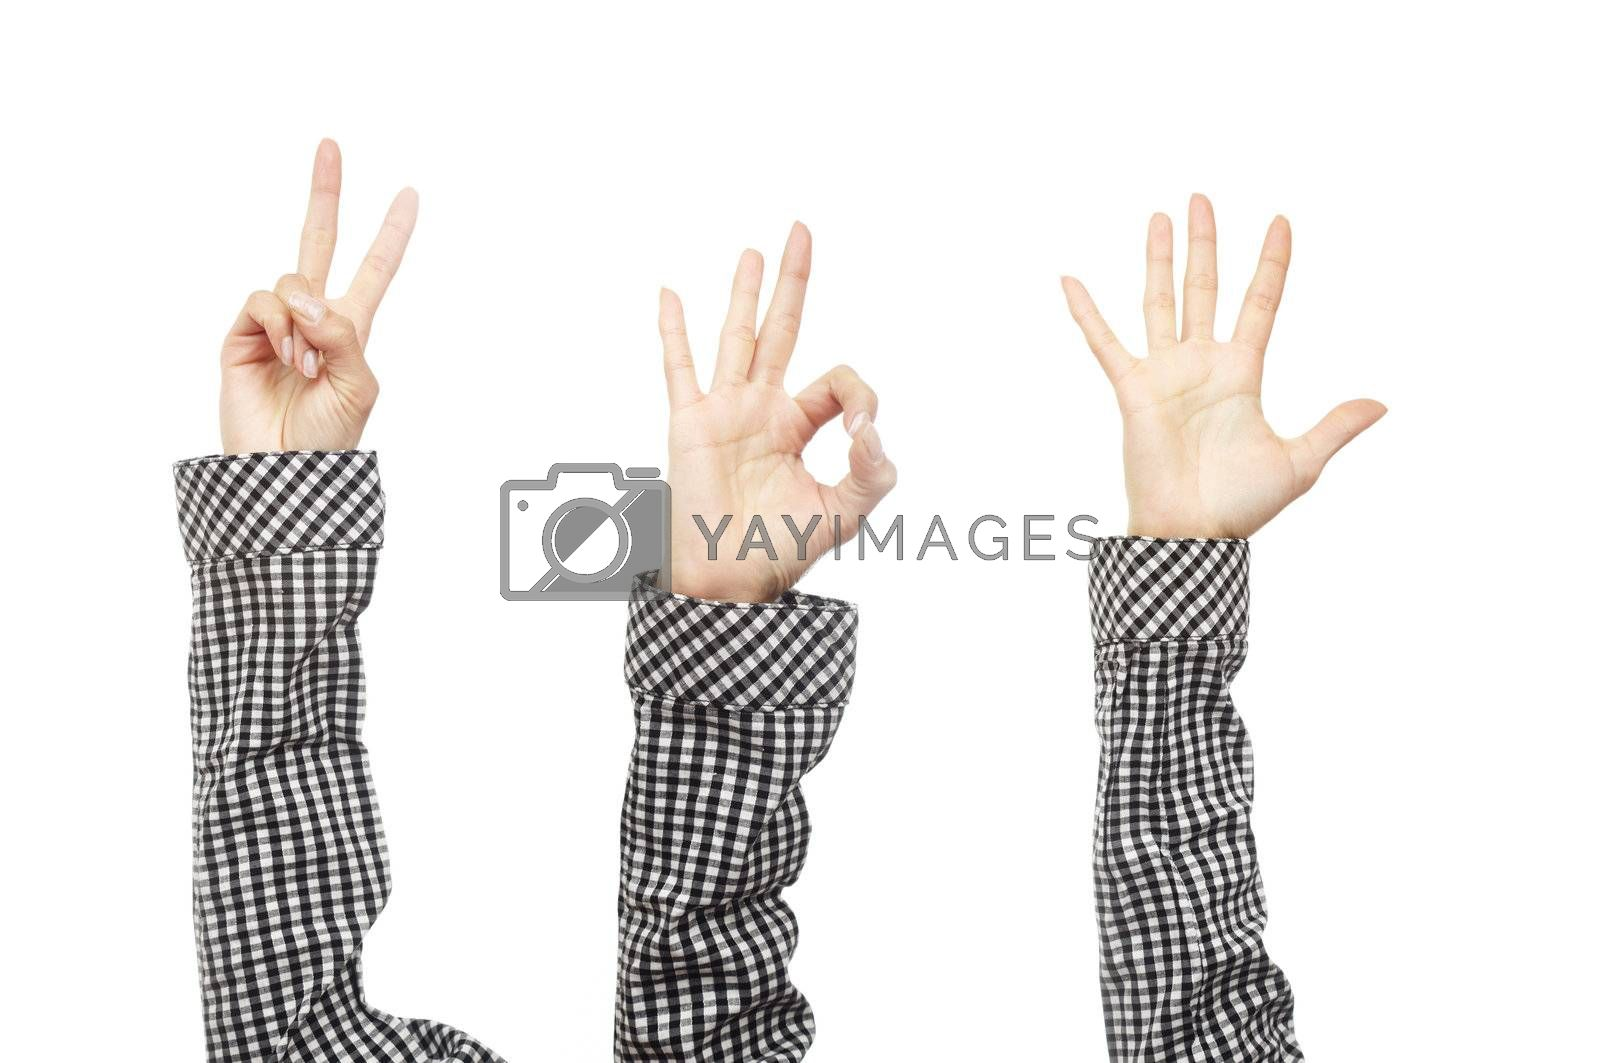 Close-up photo of the human hands in chequered shirt with various gestures on a white background